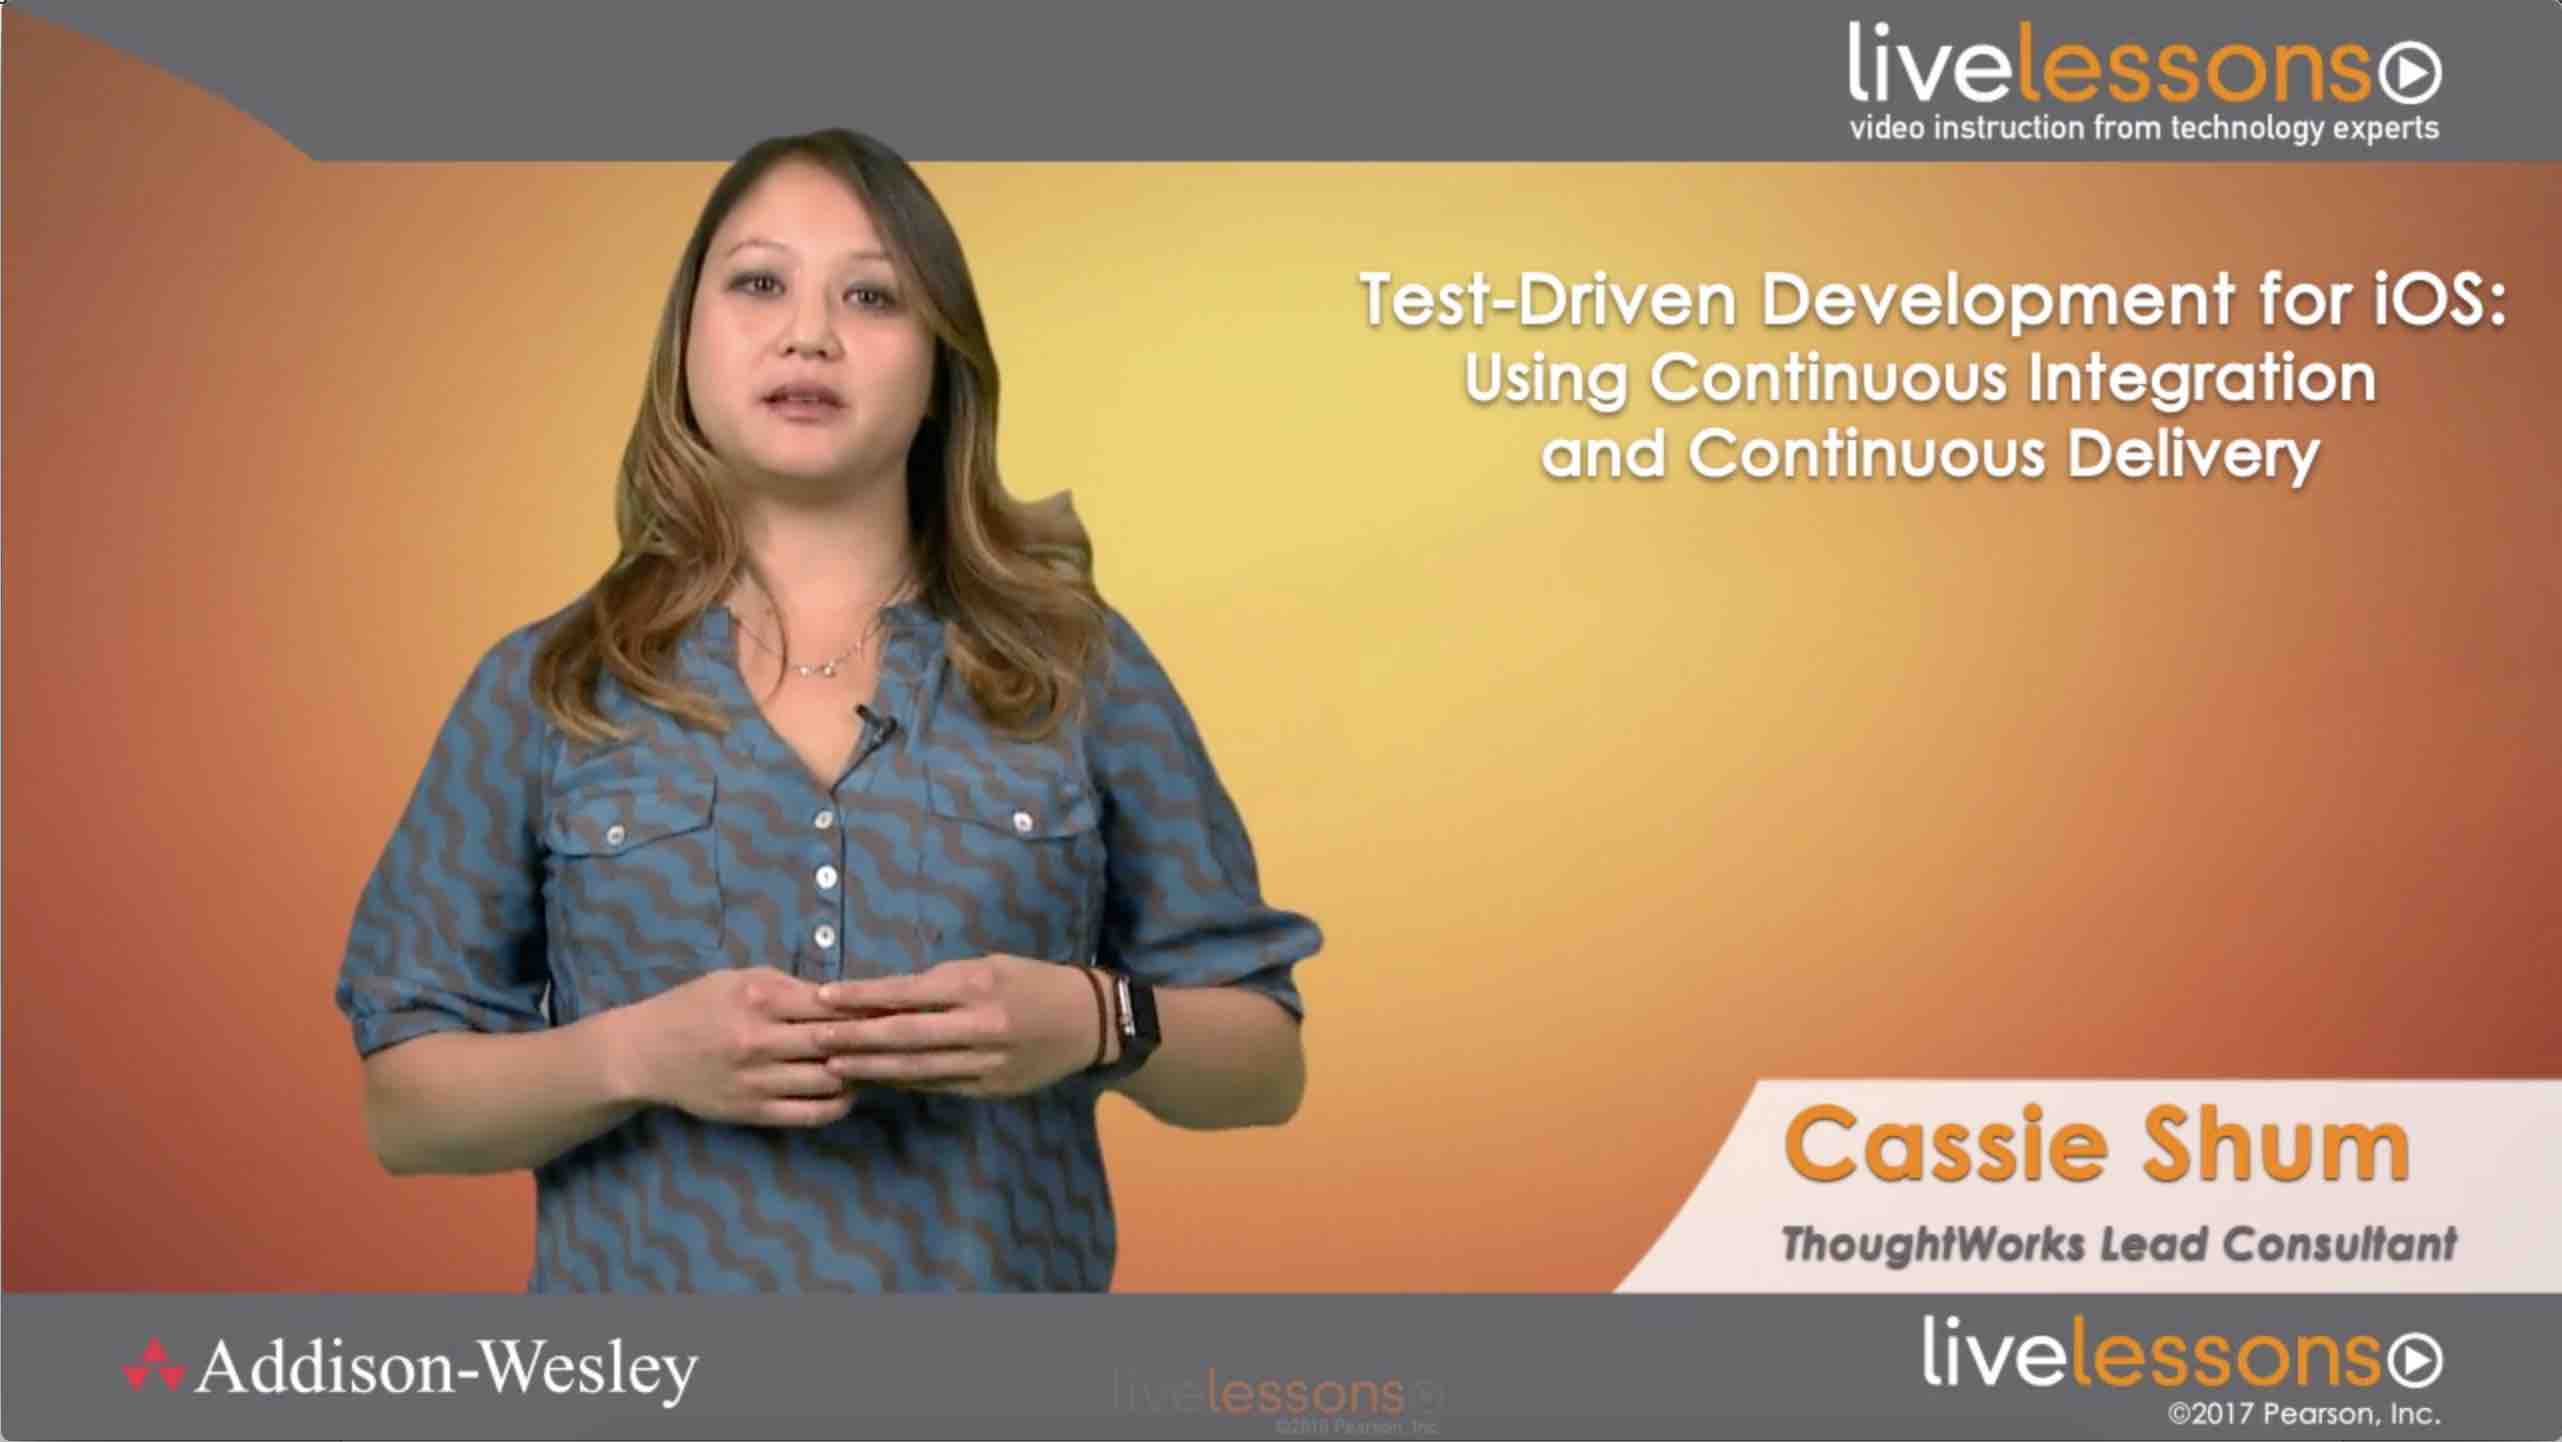 Test-Driven Development for iOS: Using Continuous Integration and Continuous Delivery Test-Driven Development for iOS: Using Continuous Integration and Continuous Delivery